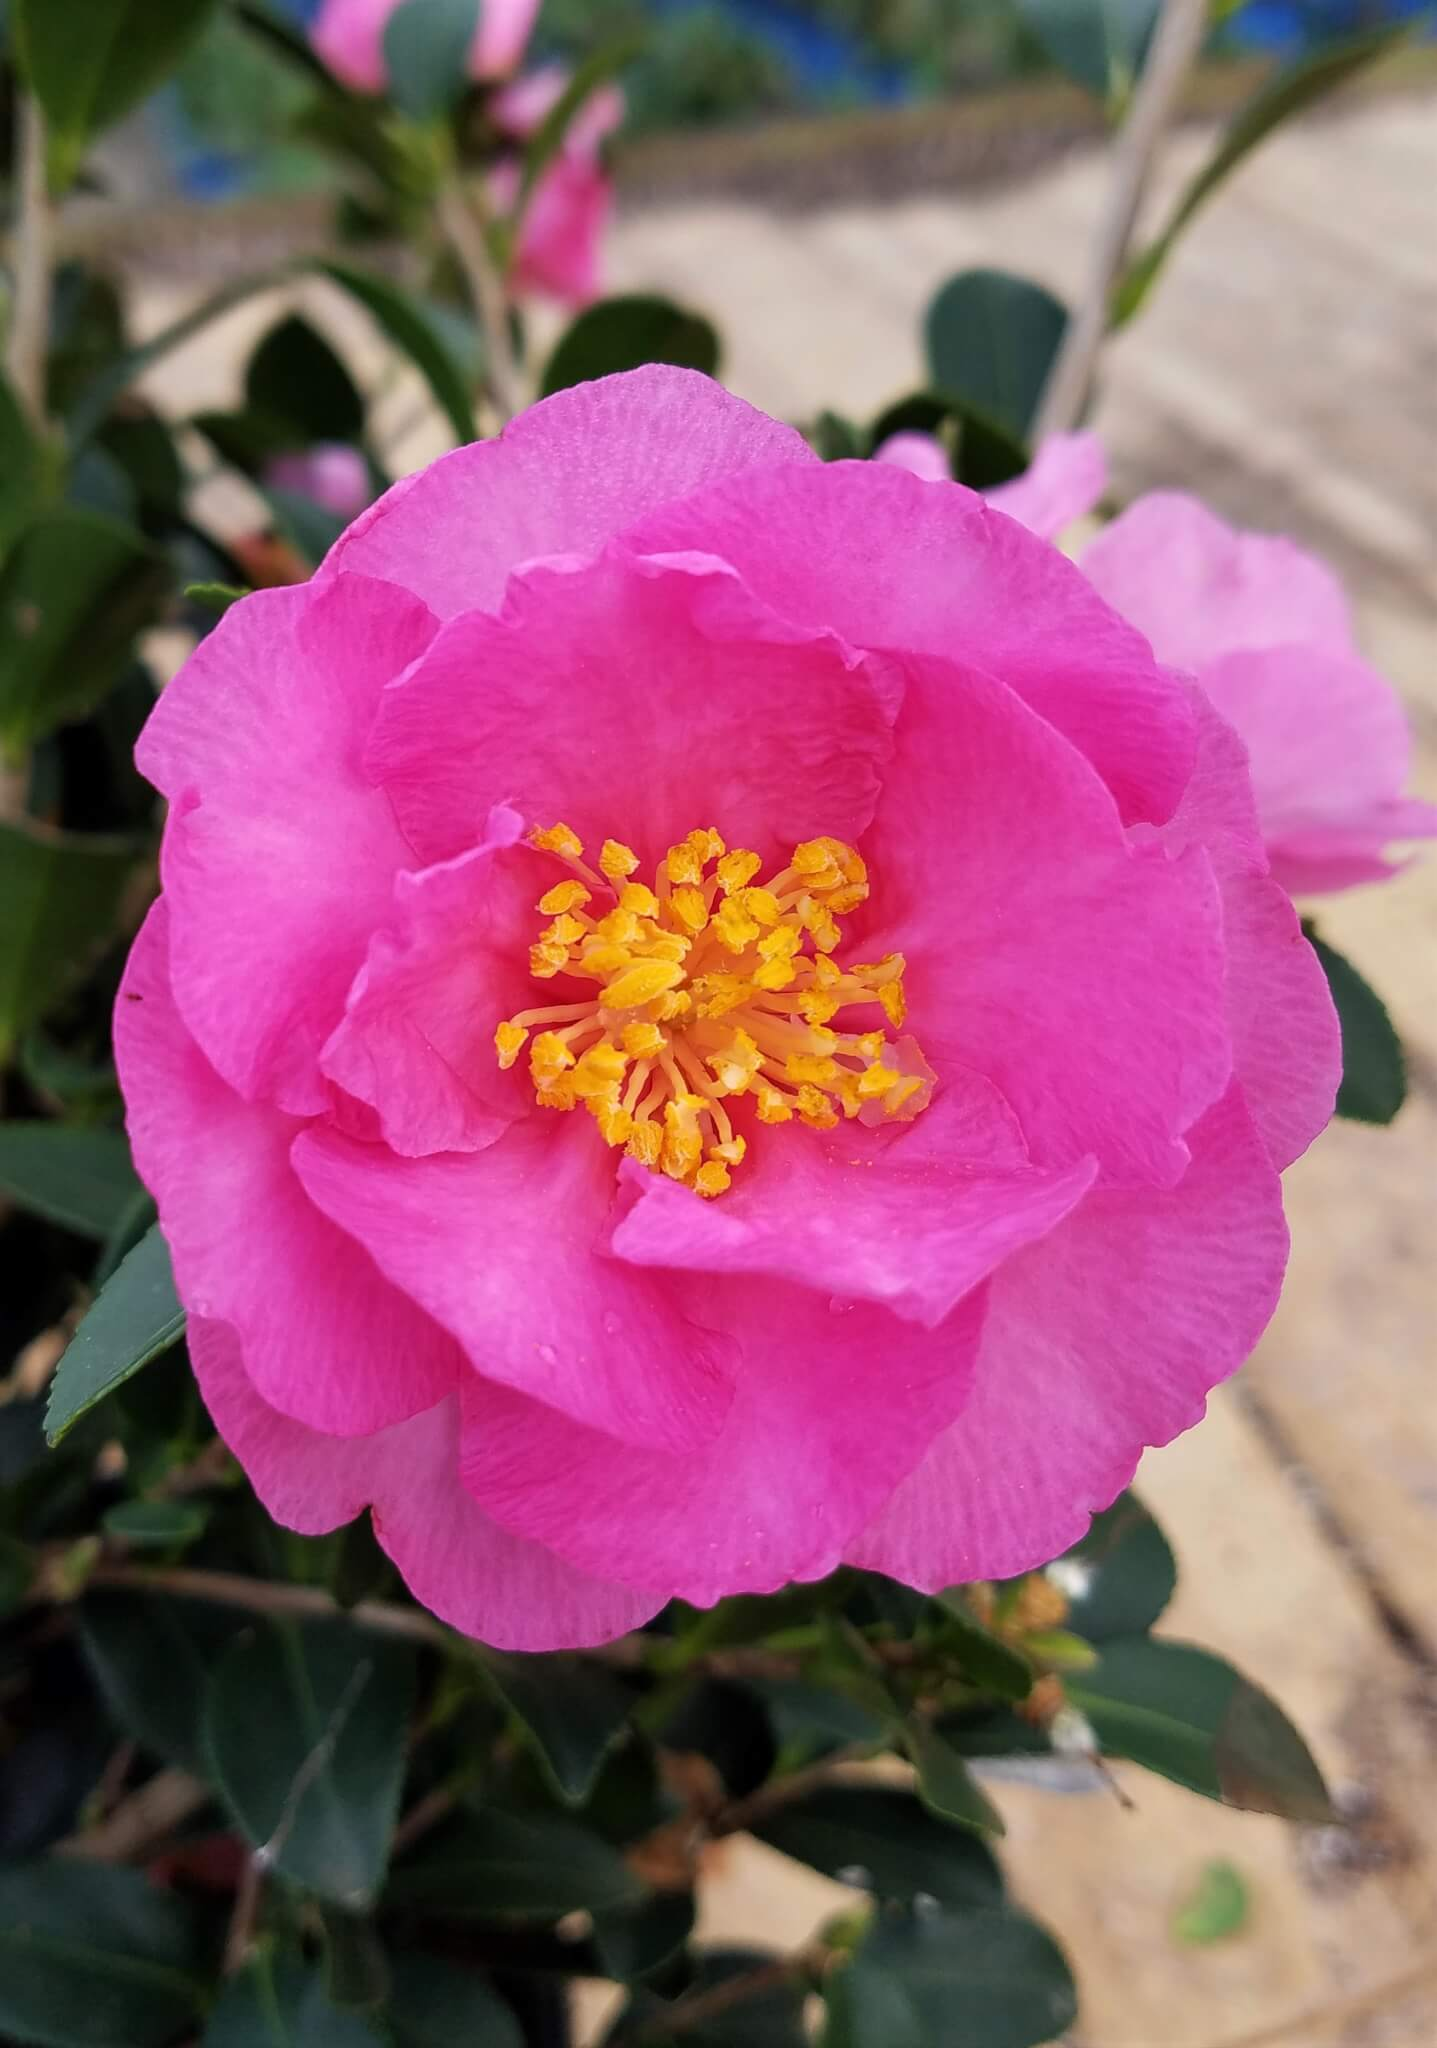 Stephanie Golden Camellia Vibrant Dark Pink Double Flowers That Bloom Early